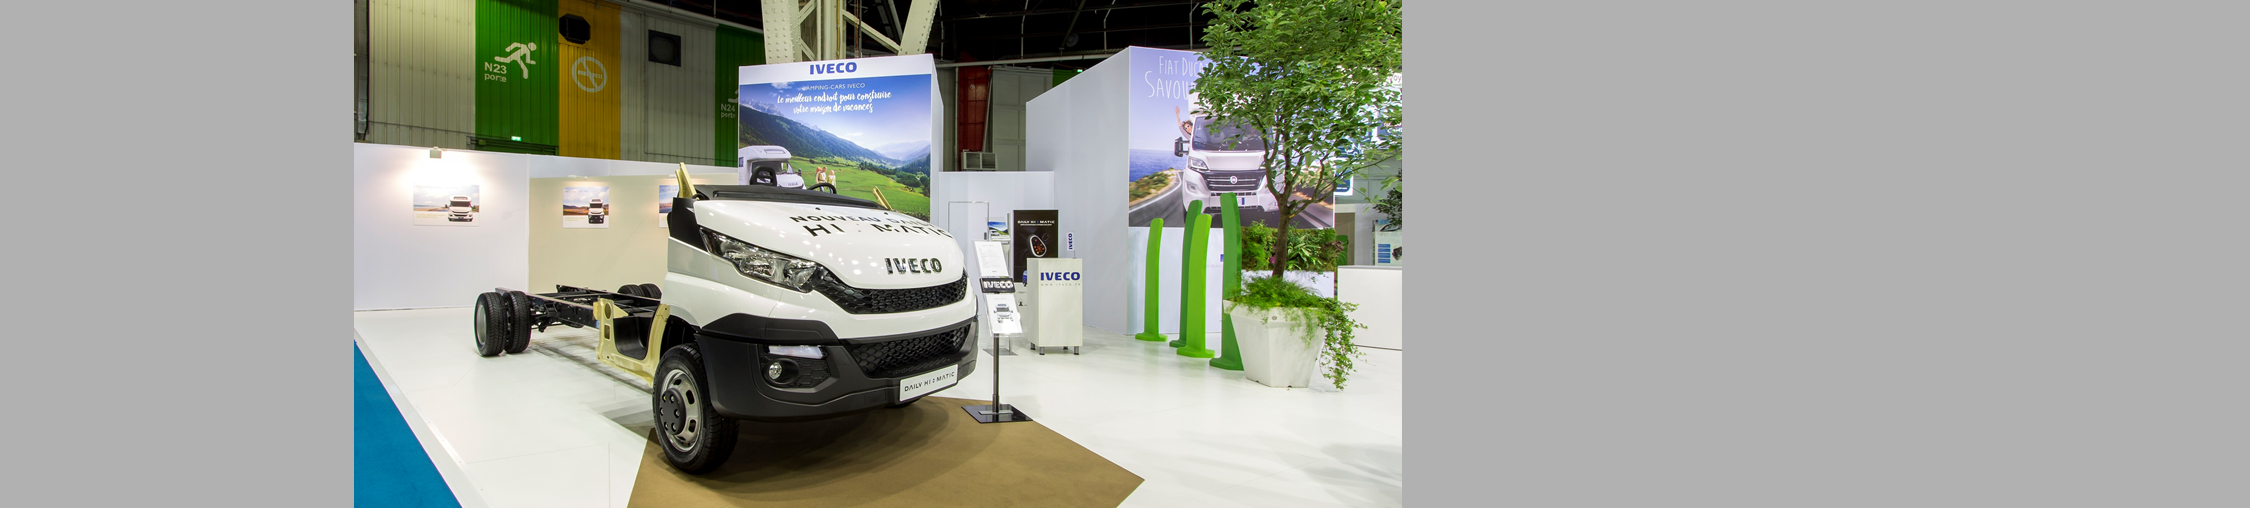 Iveco au Salon VDL à Paris - Le Bourget